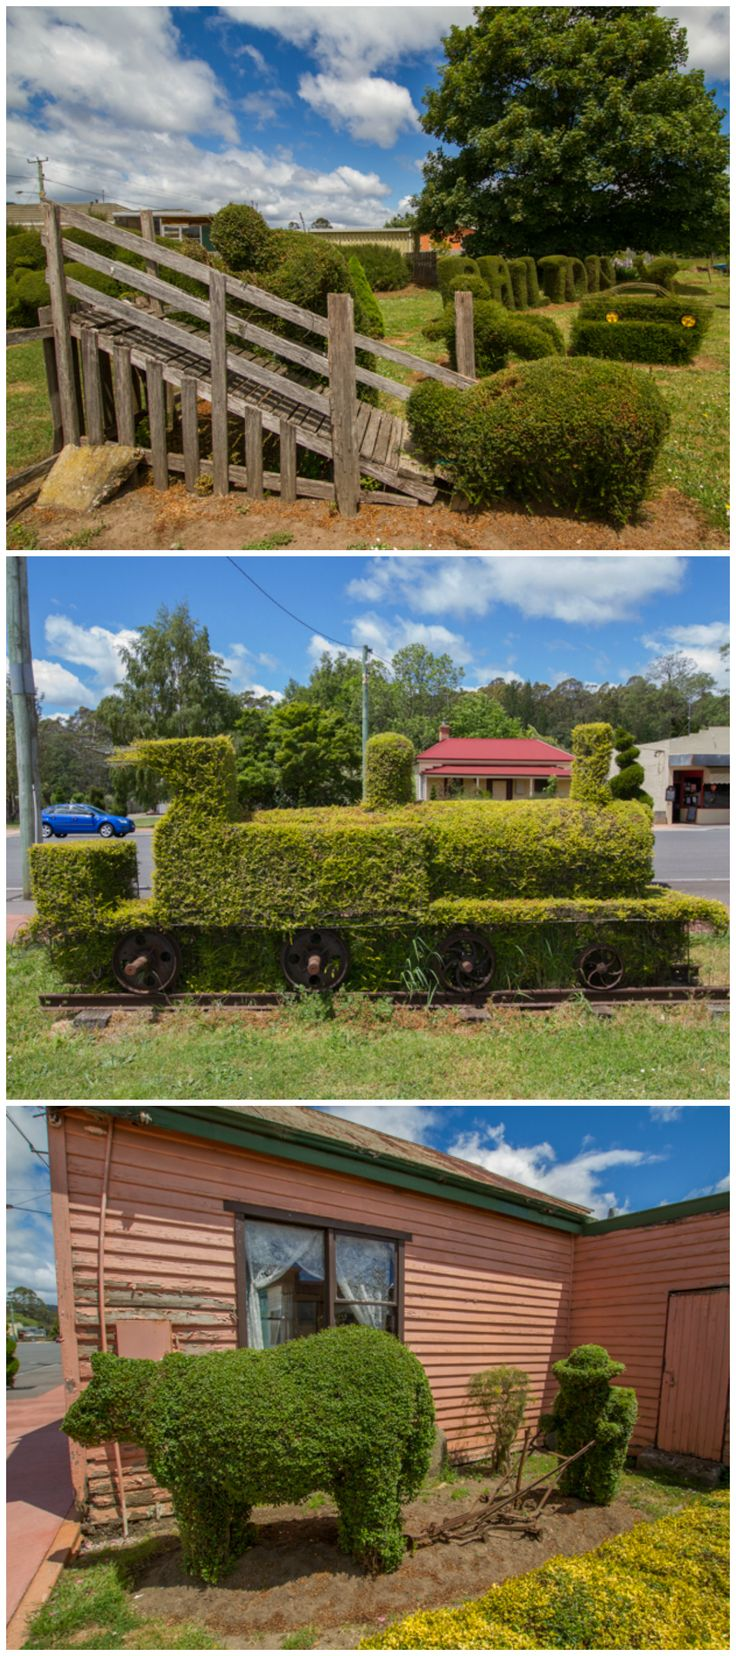 Sheffield's neighbour: Railton, the Town of Topiary. Photos by Benita Bell, article for www.think-tasmania.com